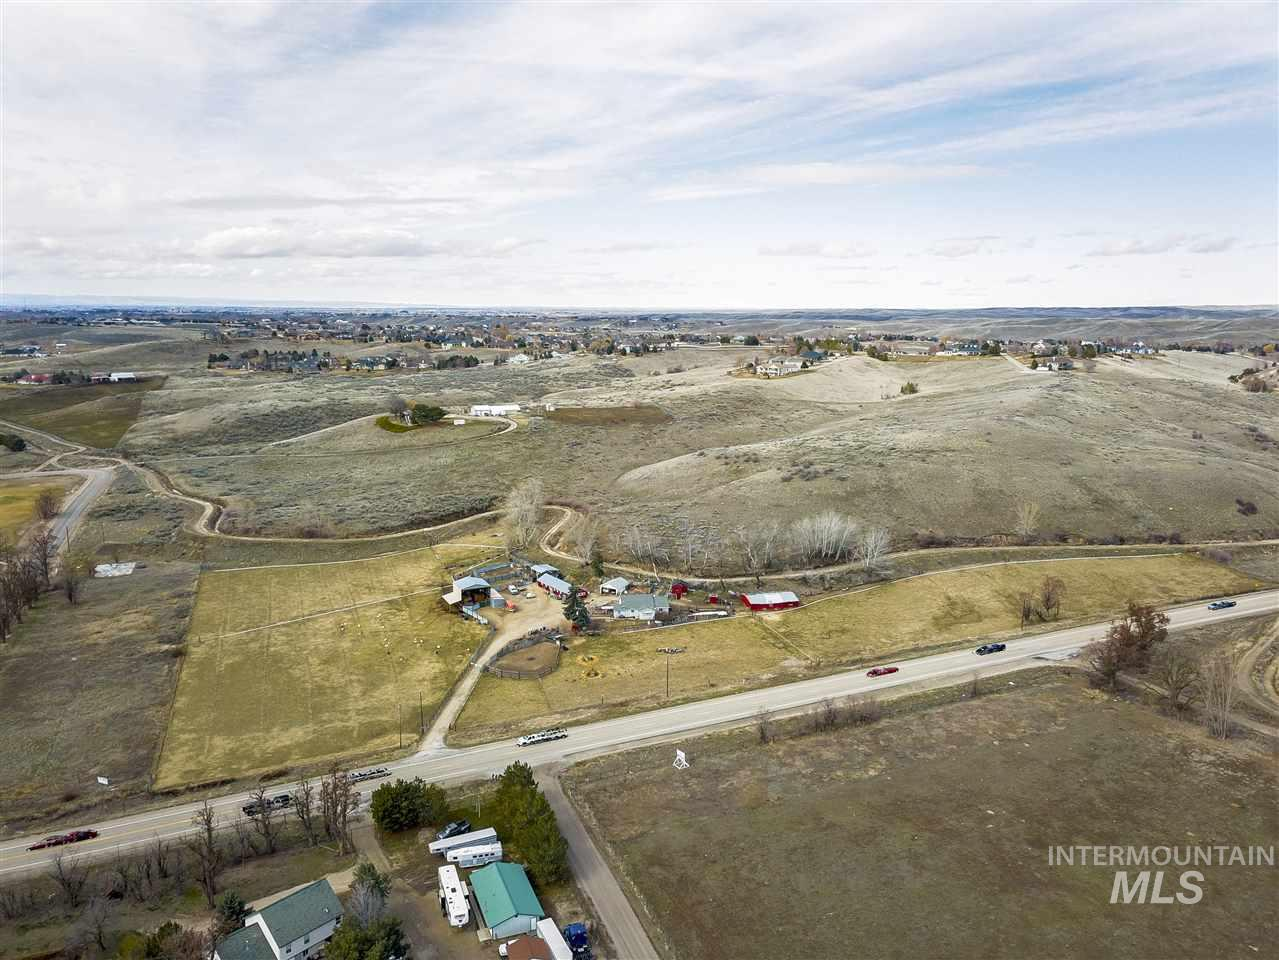 4505 N Highway 16, Eagle, Idaho 83616, Land For Sale, Price $950,000, 98721758